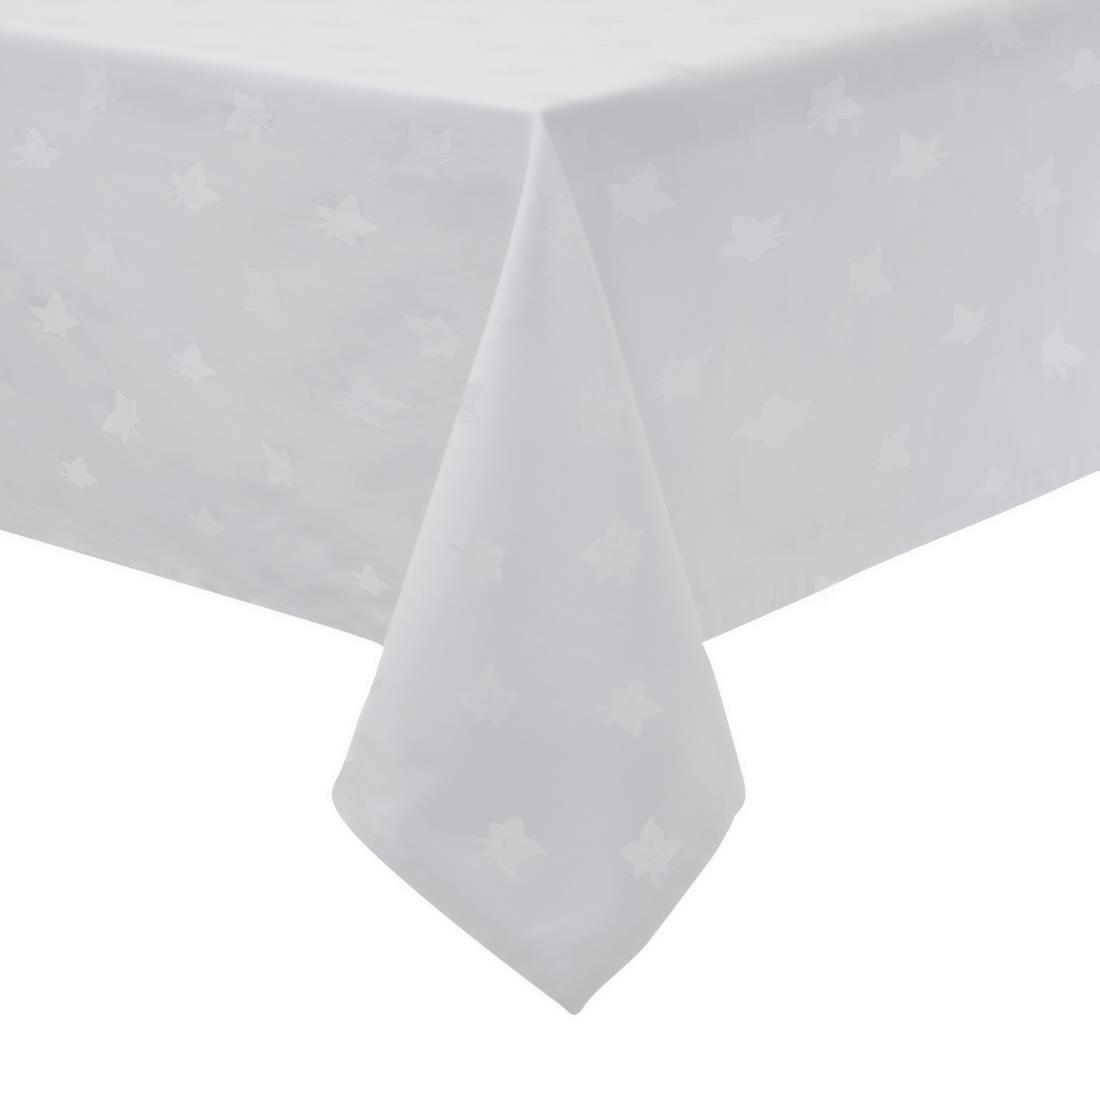 Image of Mitre Luxury Luxor Tablecloth Ivy Leaf White 1350 x 2750mm